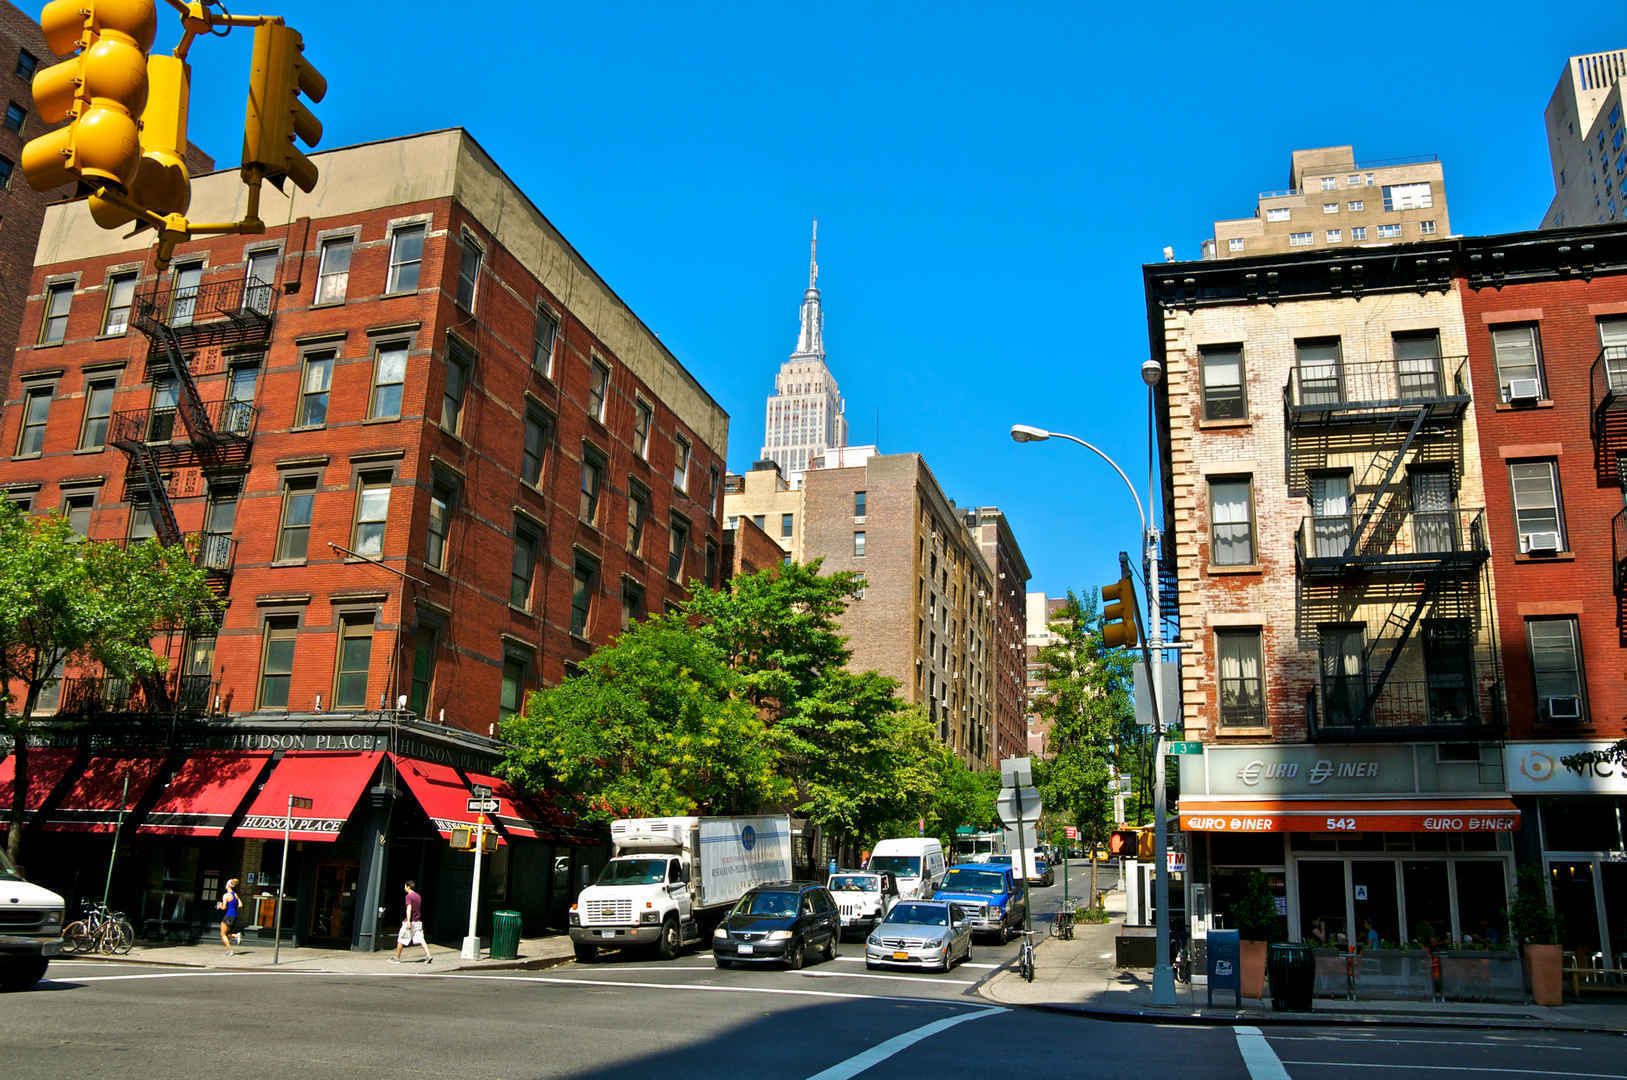 Shops and restaurants on tree-lined street in Murray Hill New York